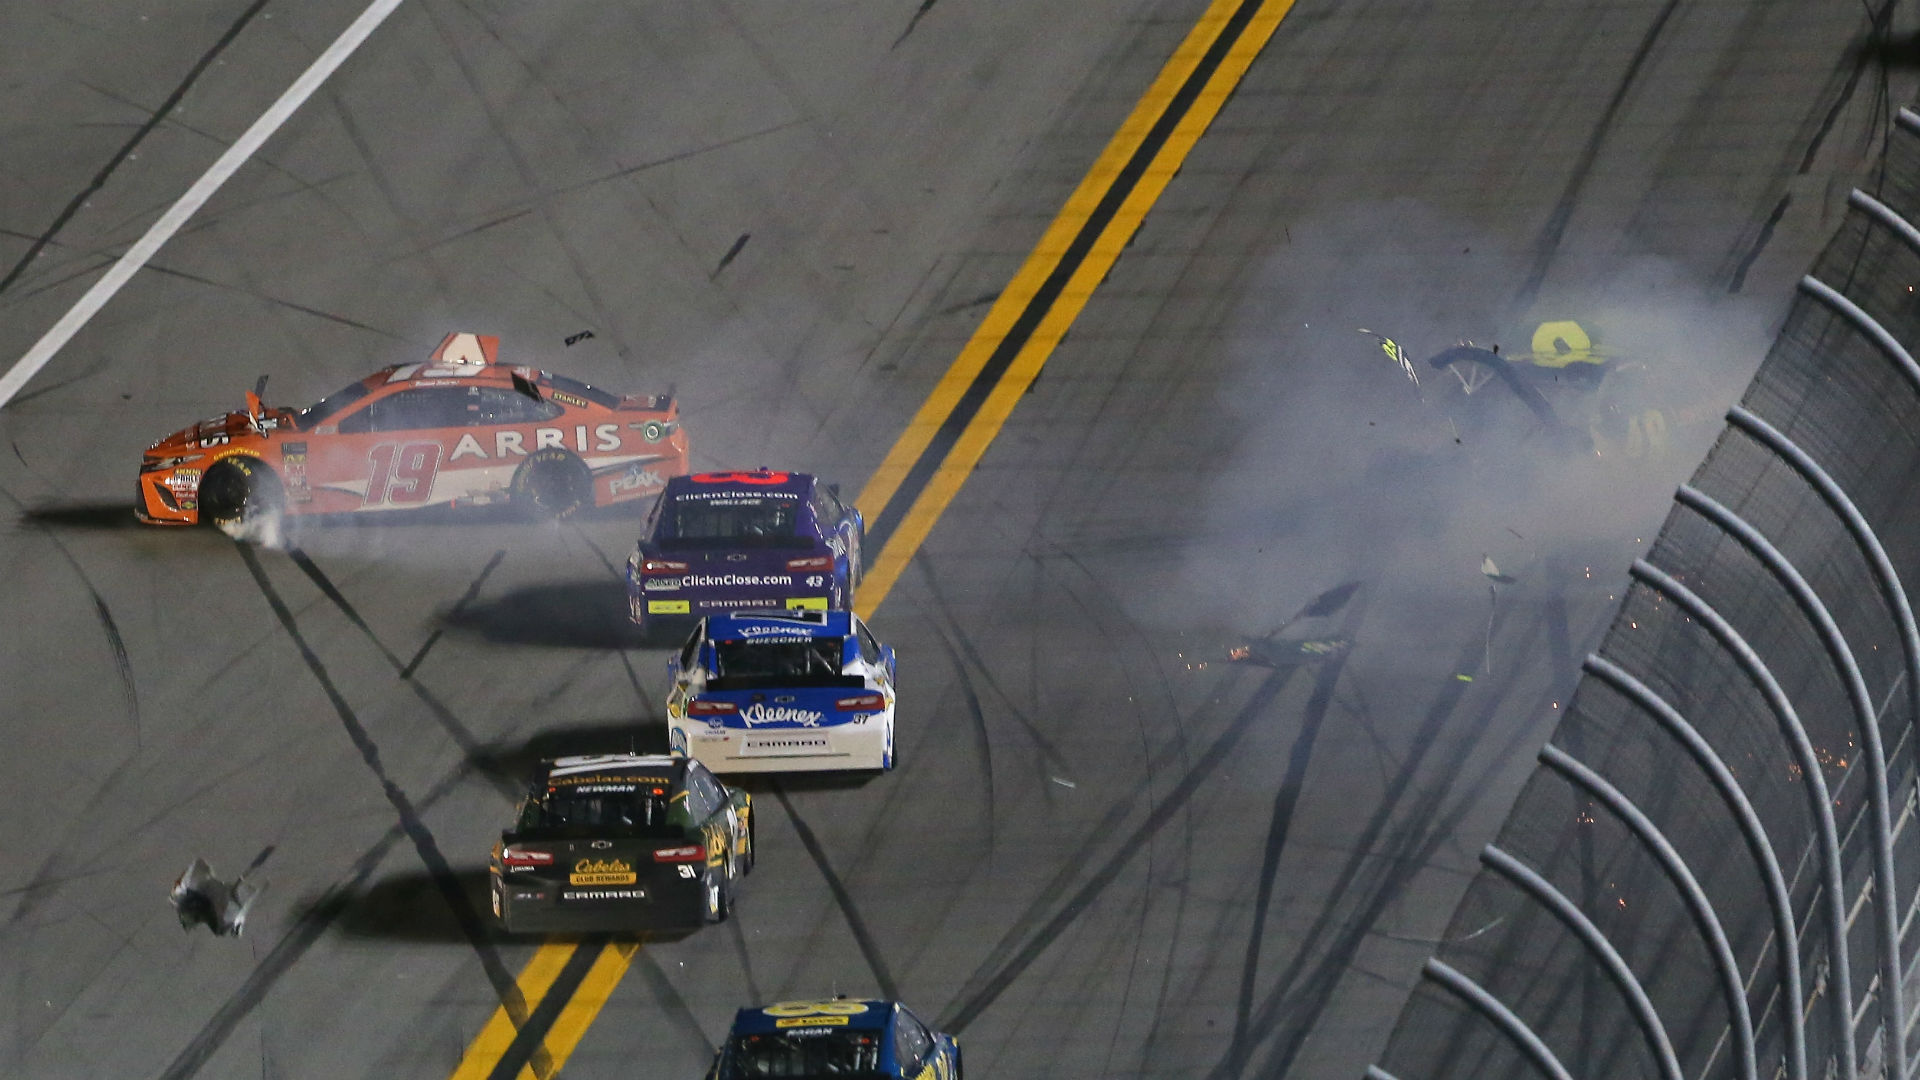 Still the big one: Drivers hold Daytona 500 in high esteem